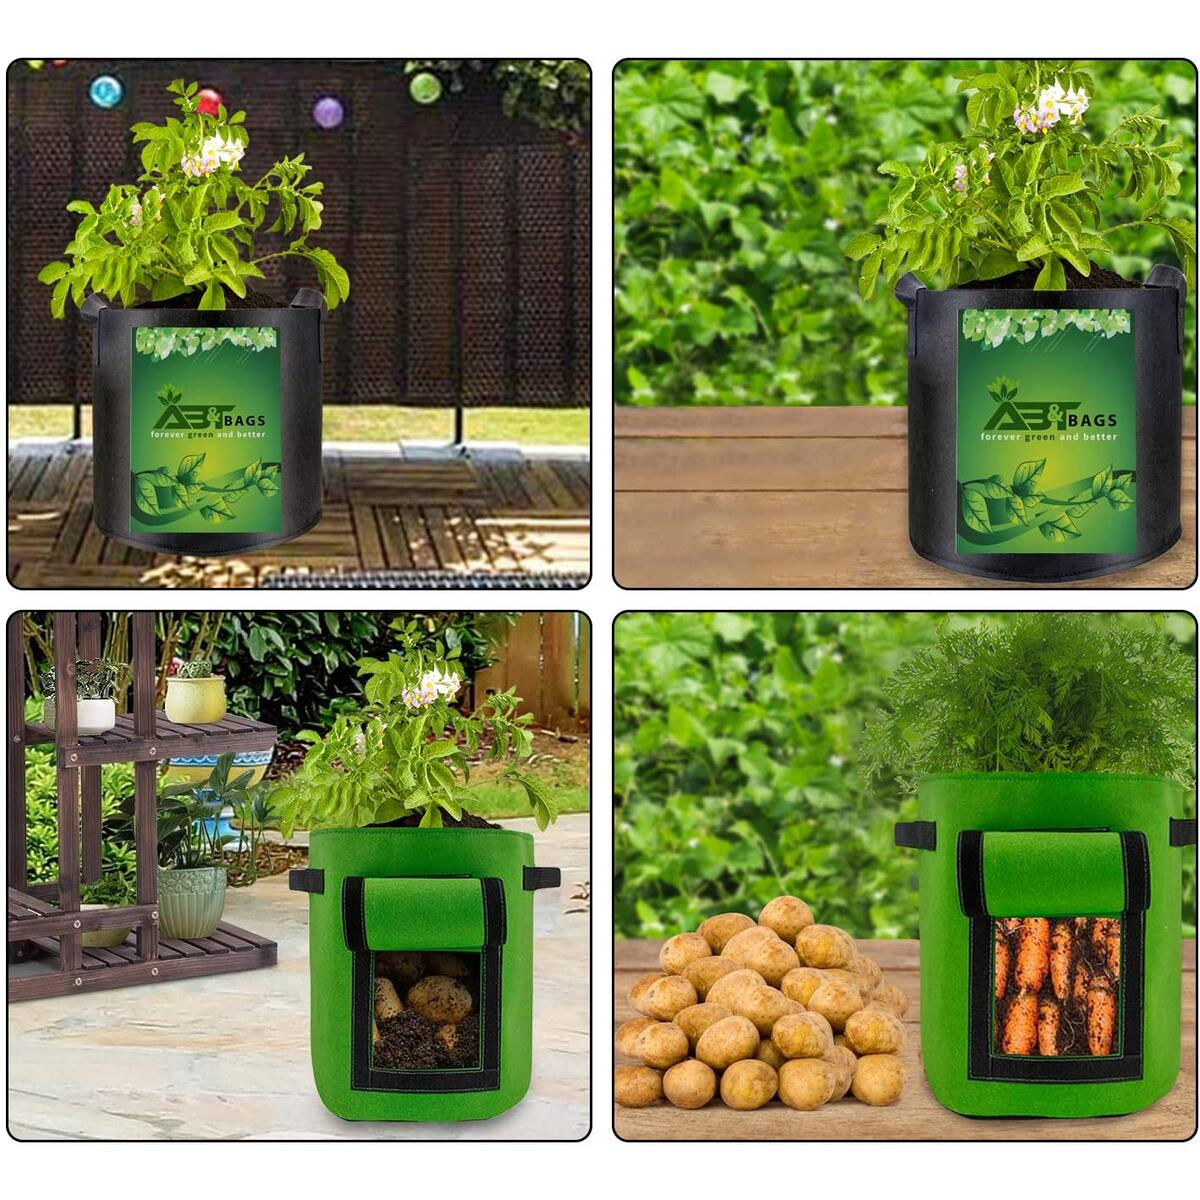 AB&T Grow Bags Potato Grow Bags 7 Gallon 8 Pack with Flap Handles Thickened Nonwoven Fabric Pots Tomato Planter Bags Plant 8 Watering Spikes Garden Container Vegetables Planter Pots Plant Waterer